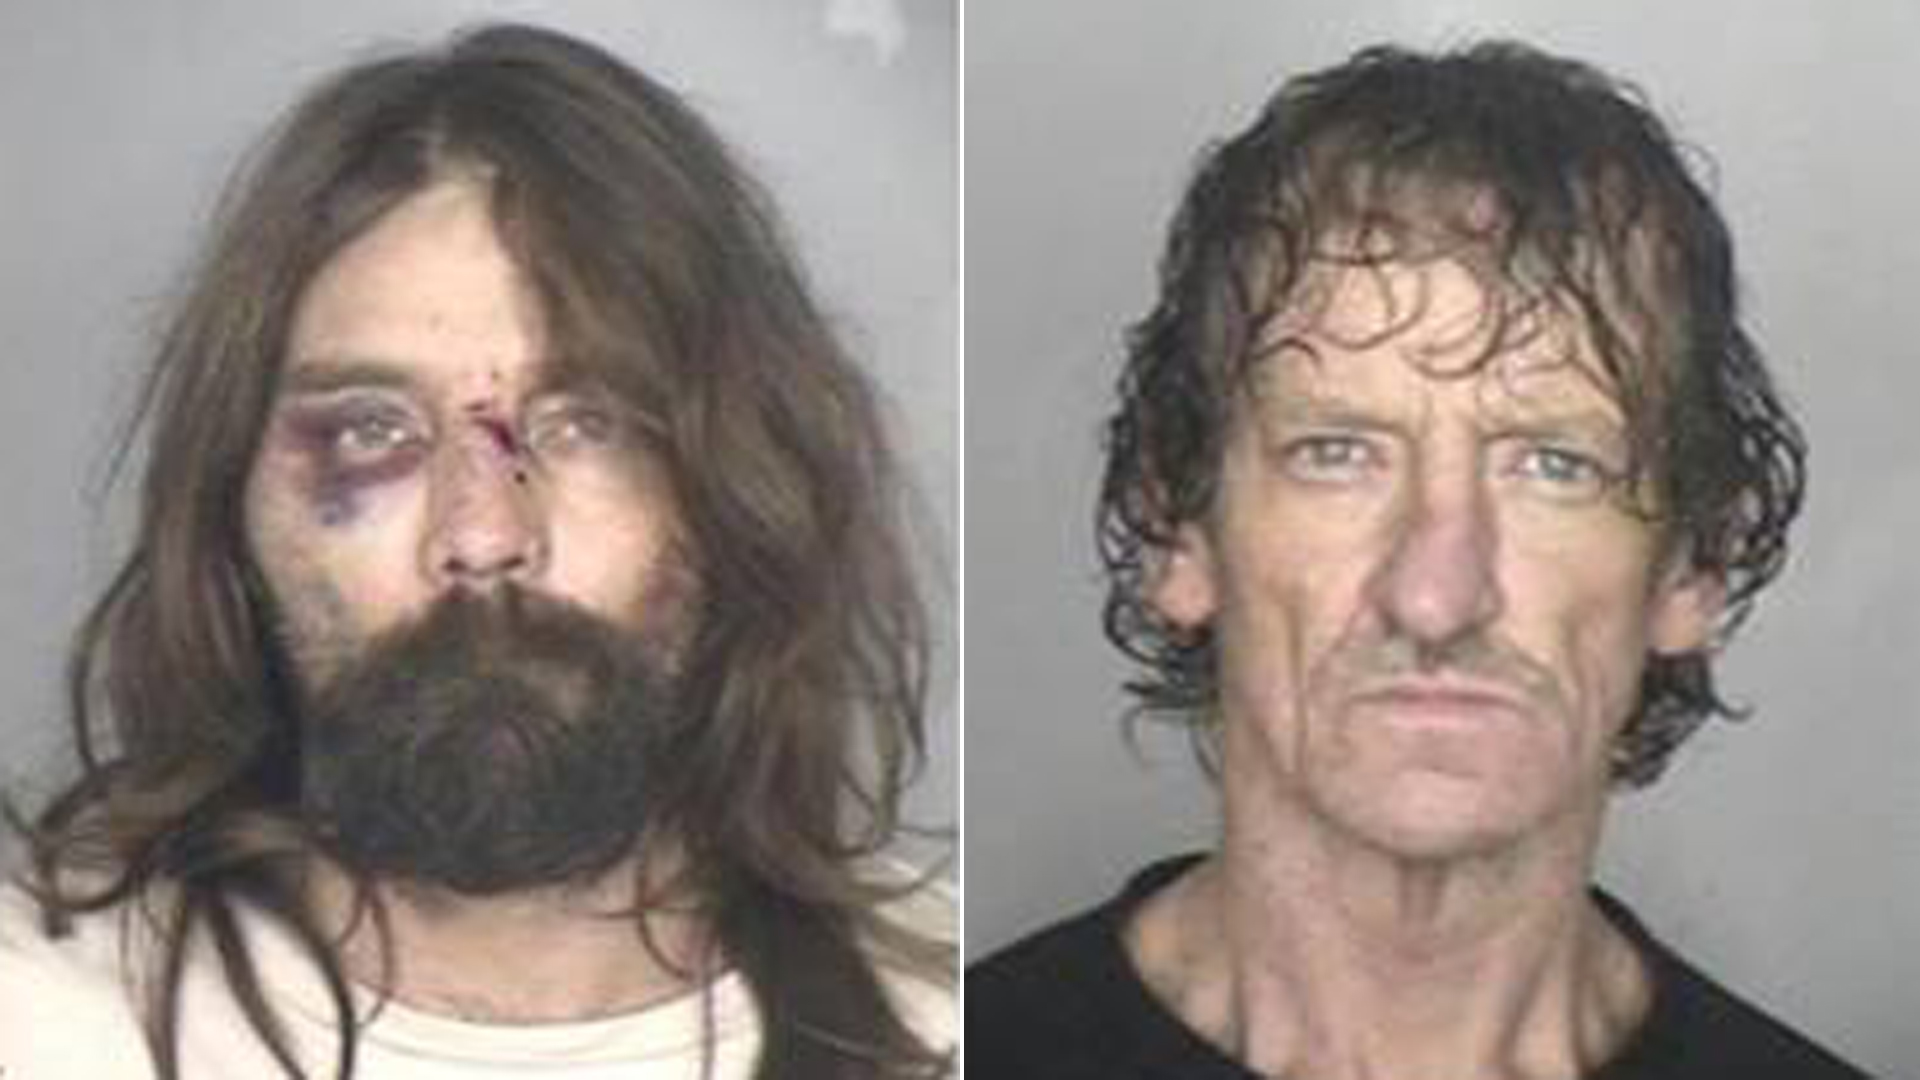 Kenneth Wayne Zimmerman and David Eugene Blood are seen in booking photos released by the Butte County Sheriff's Office on Jan. 29, 2019.